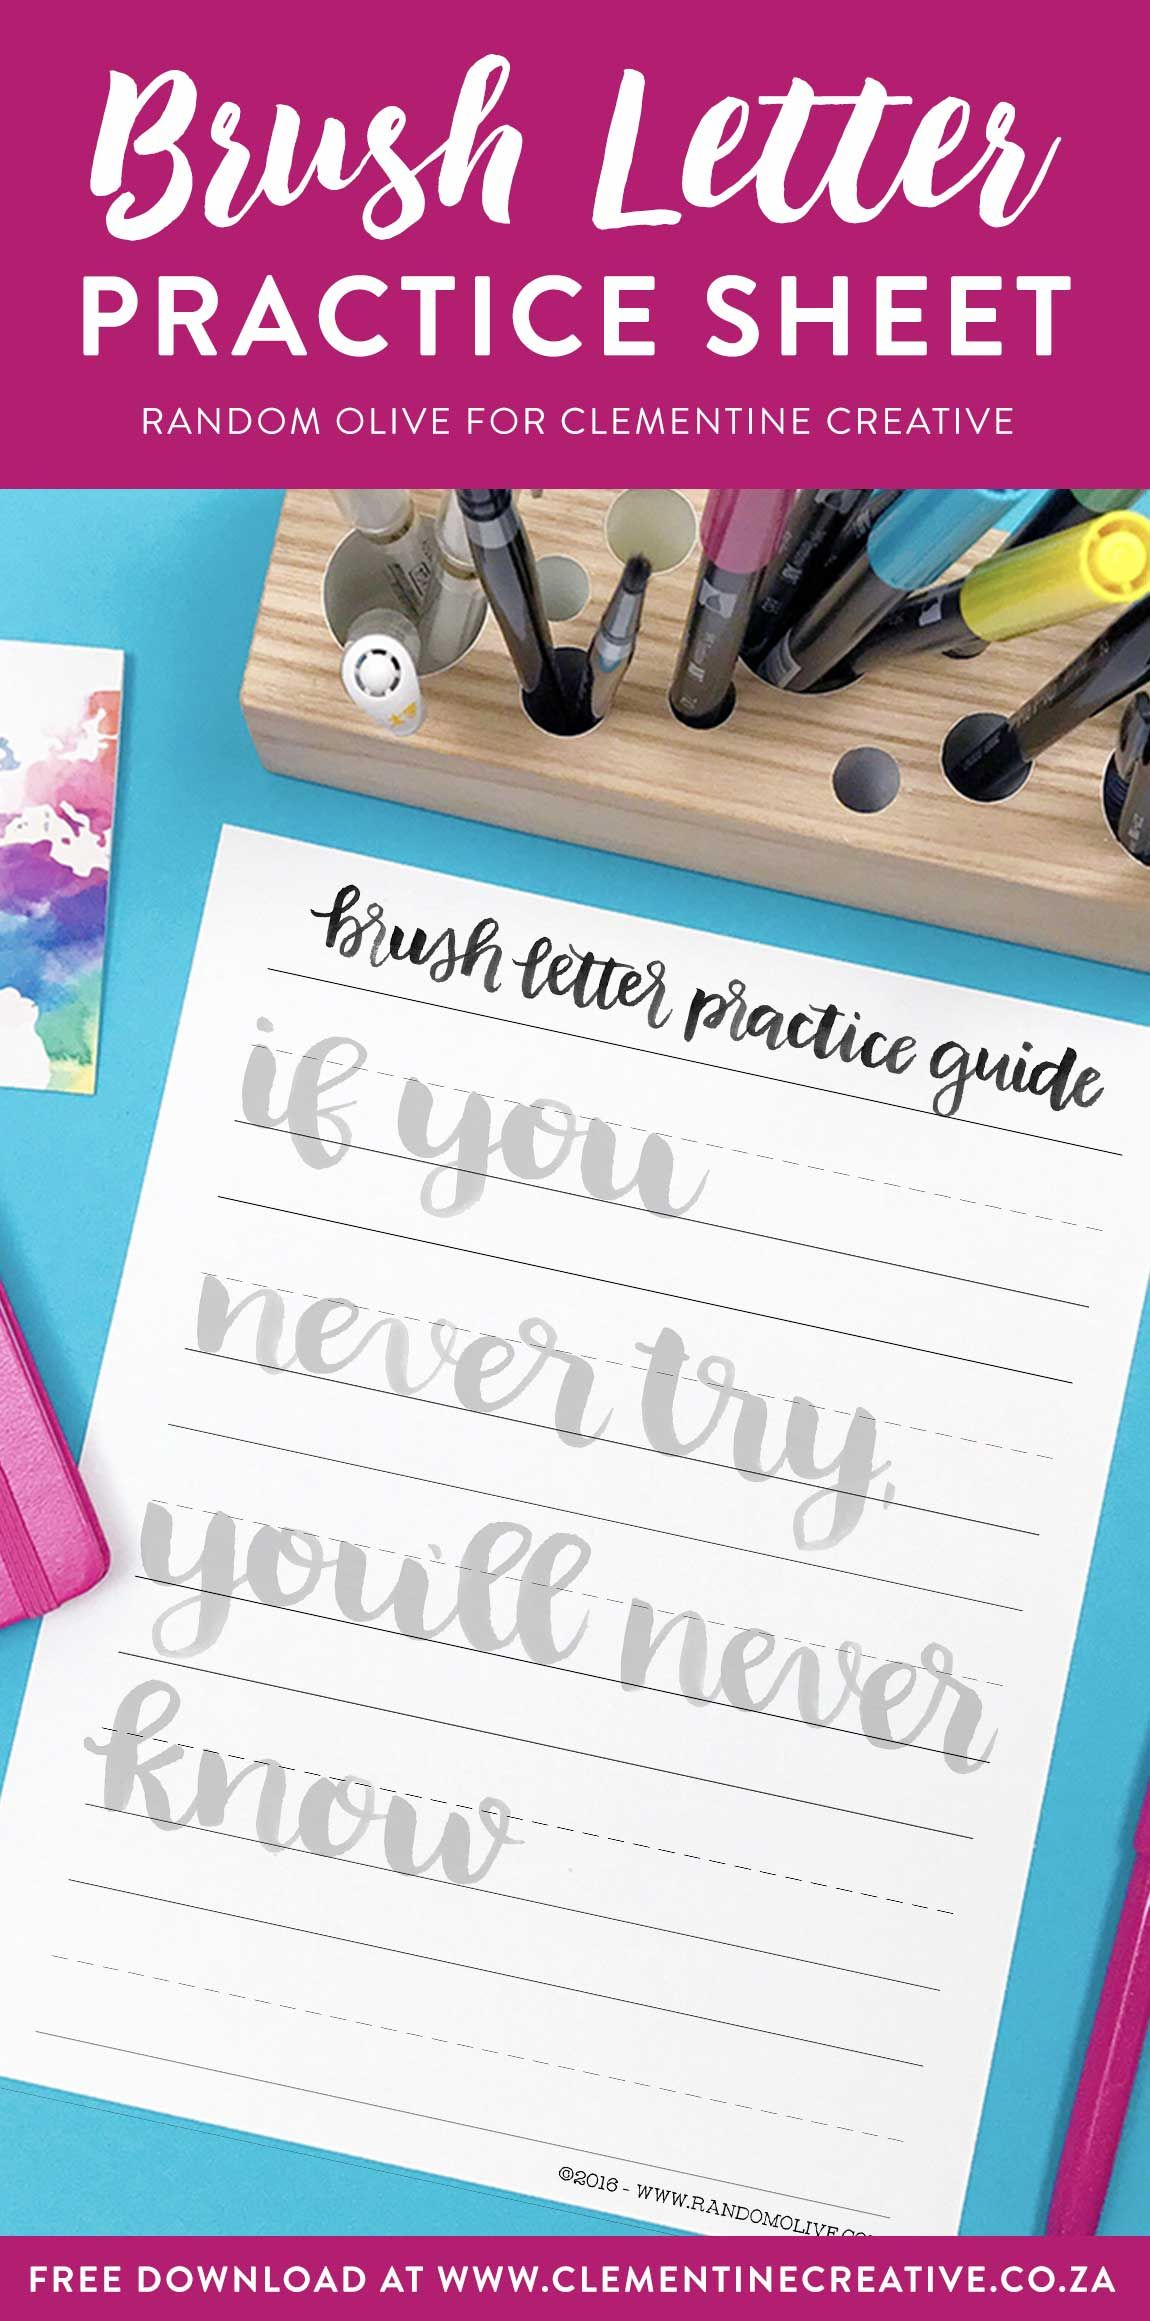 Free Brush Lettering Practice Sheet If You Never Try You Ll Never Know Hand Lettering Worksheet Free Brush Lettering Practice Sheets Brush Lettering Practice [ 2321 x 1150 Pixel ]